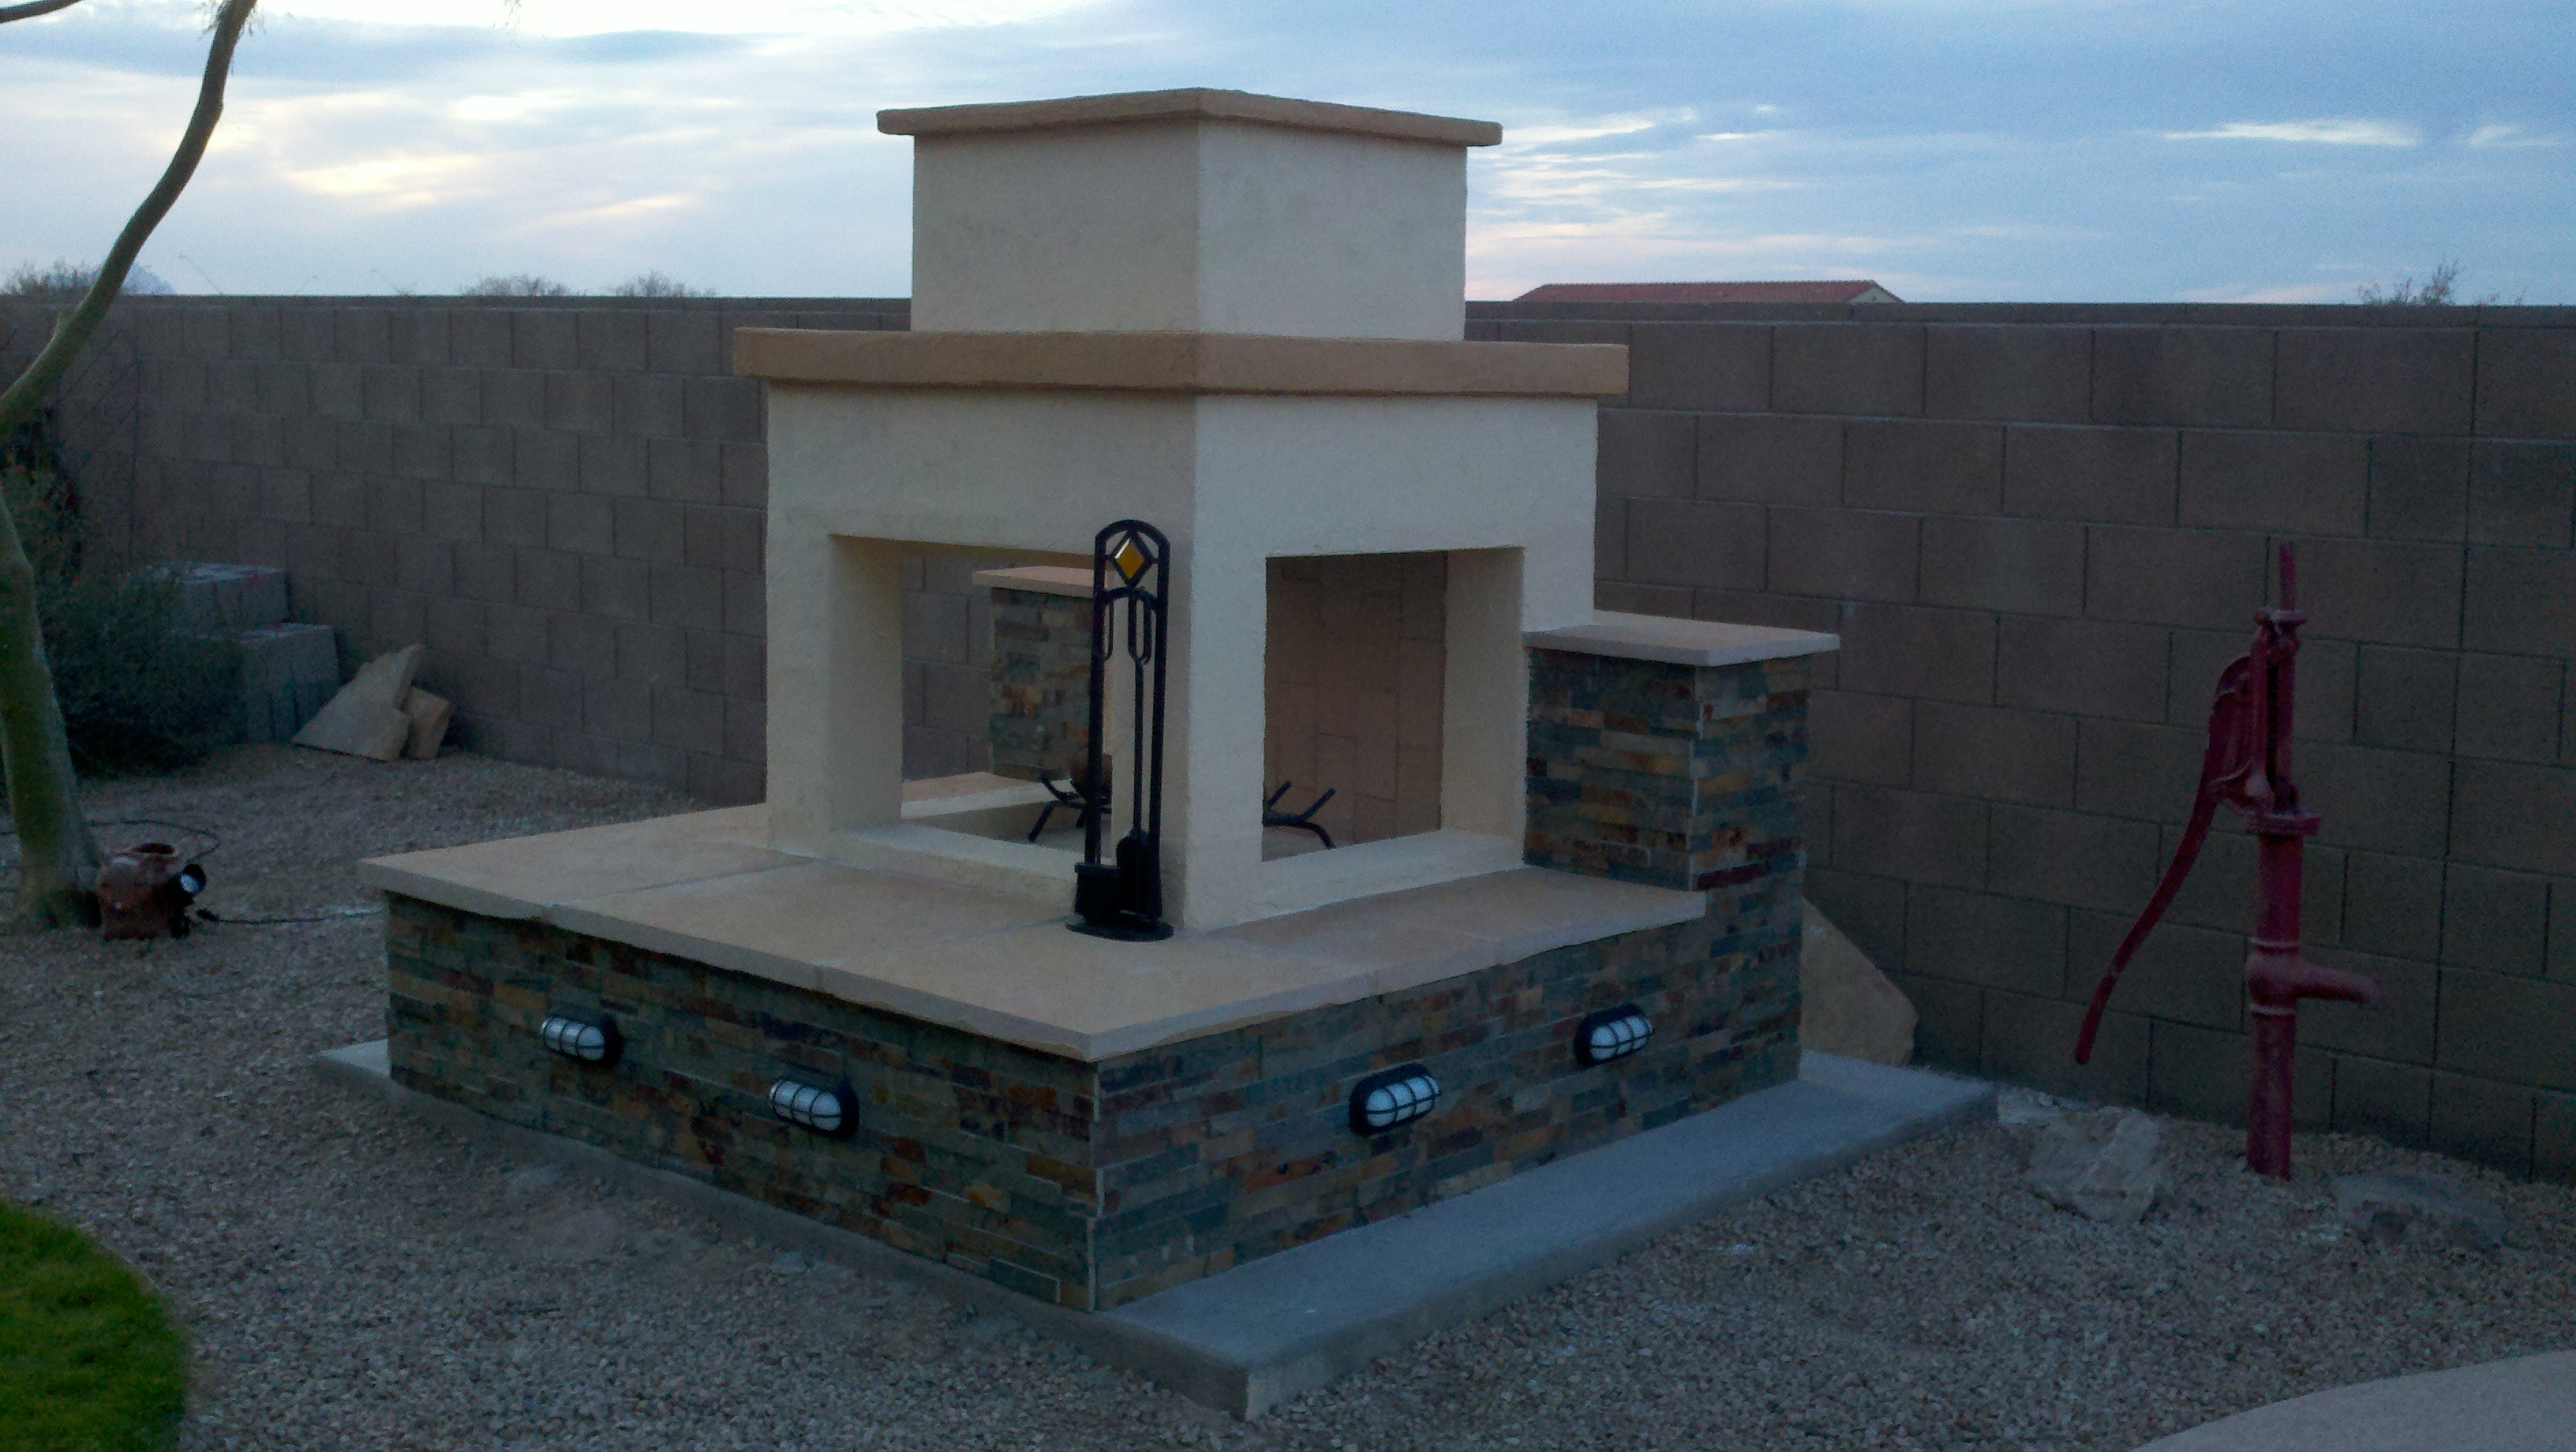 3 Great Ways to Finish Your Outdoor Fireplace | Your DIY ... on Cinder Block Fireplace Diy  id=53109